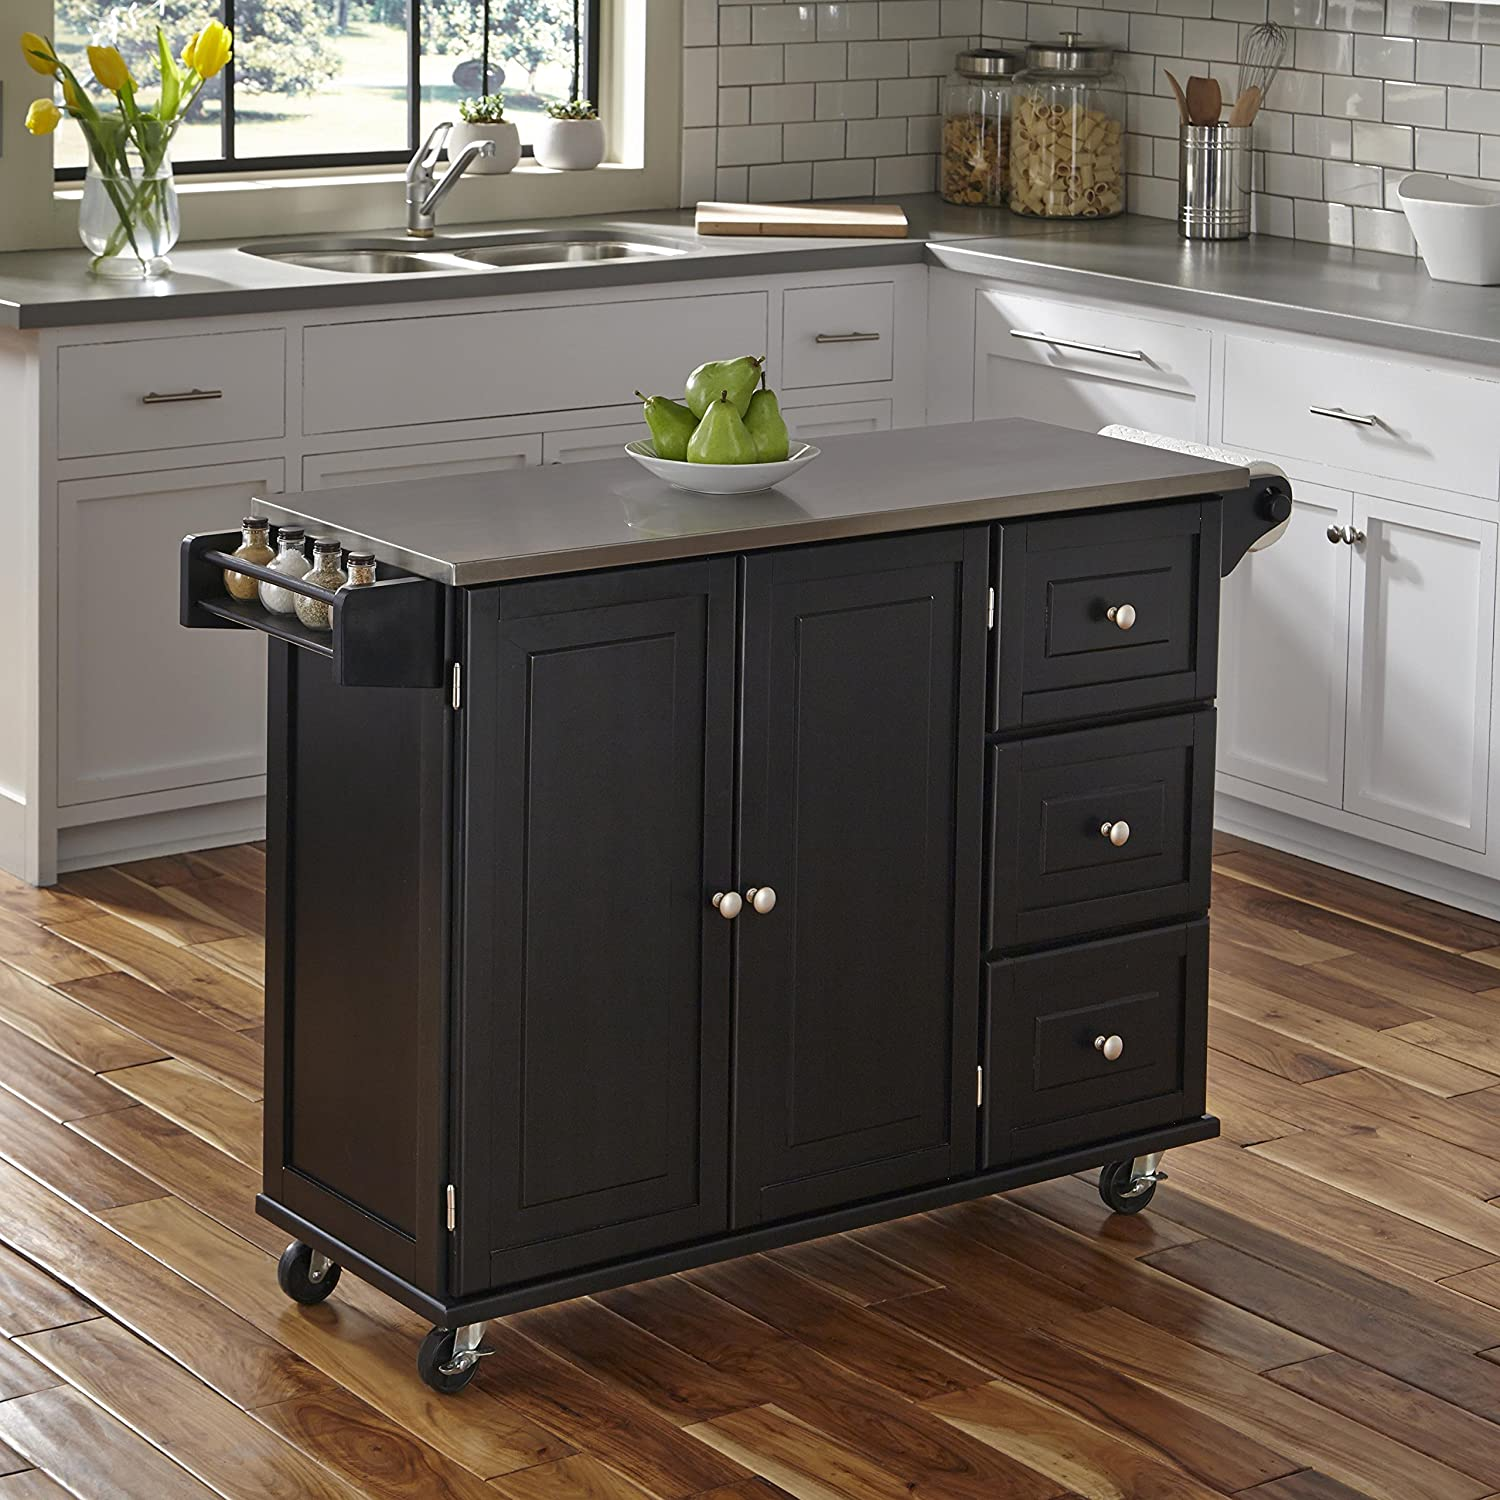 kitchen island furniture. Home Styles 4513 95 Liberty Kitchen Cart with Stainless Steel Top  Black Islands Carts Amazon com